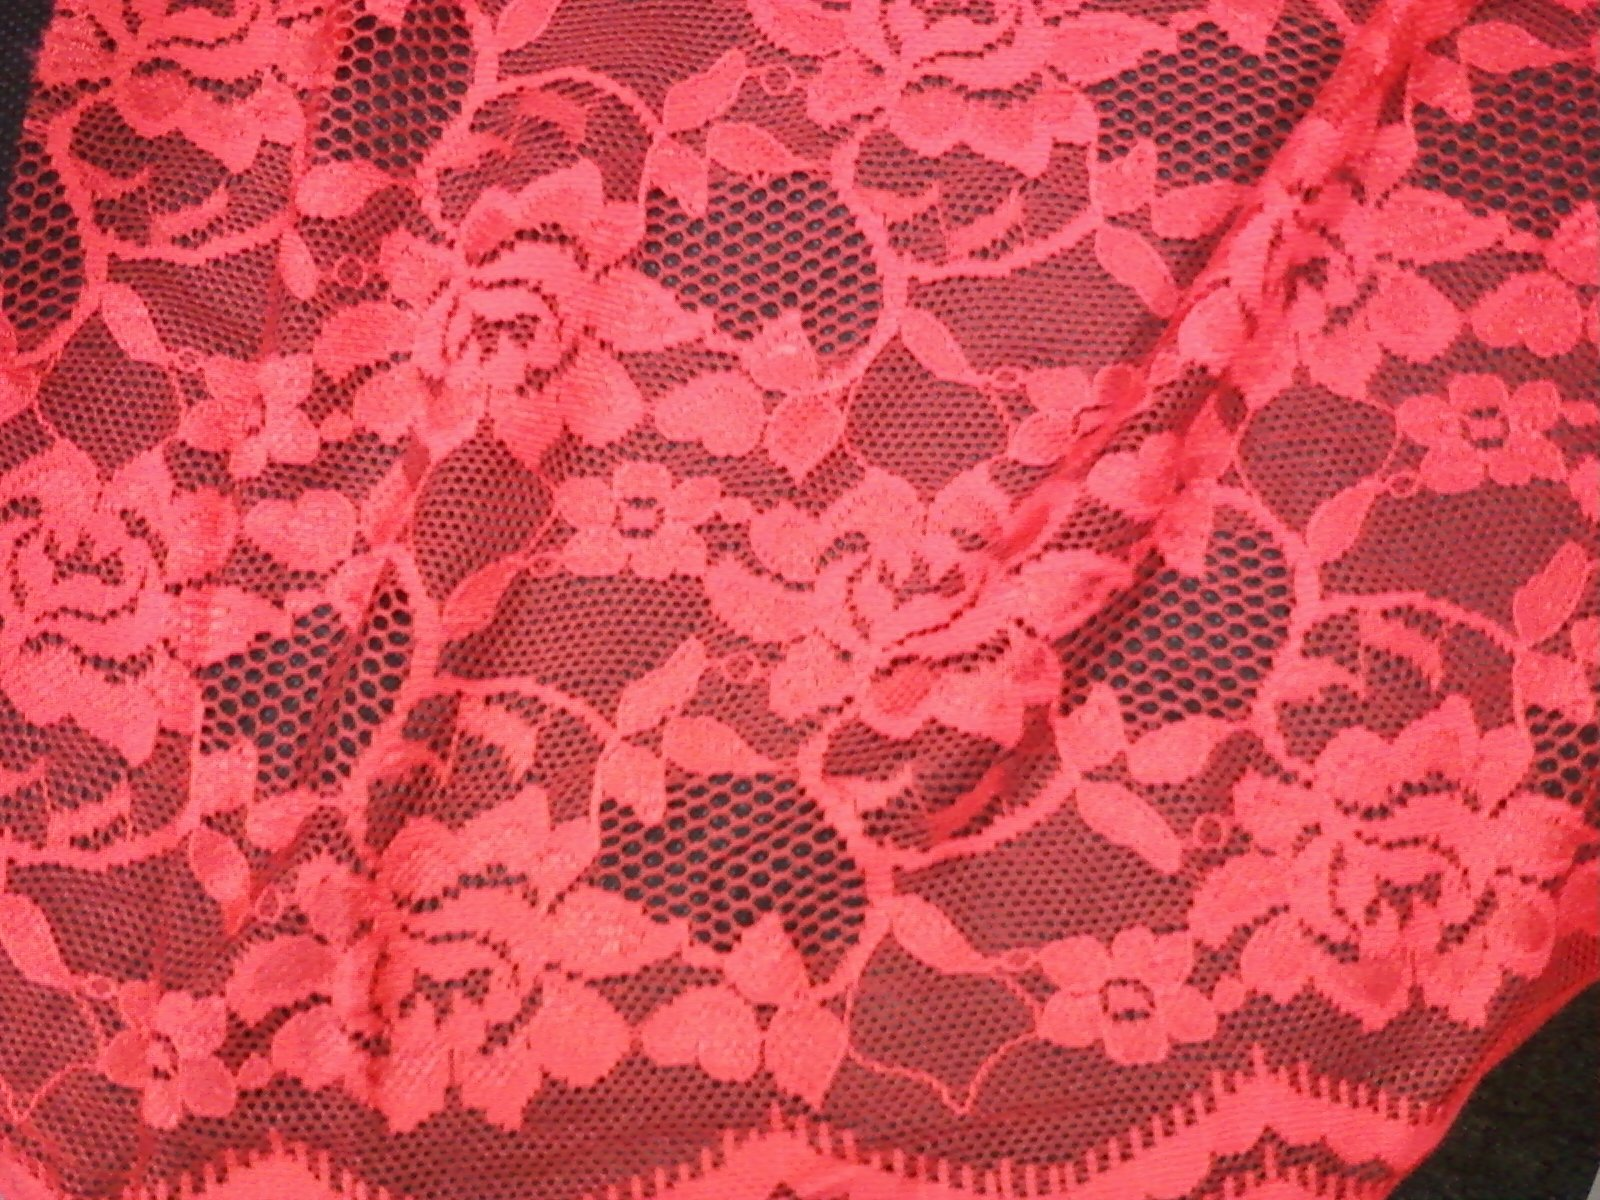 LOG ENCHANTING LACE RED